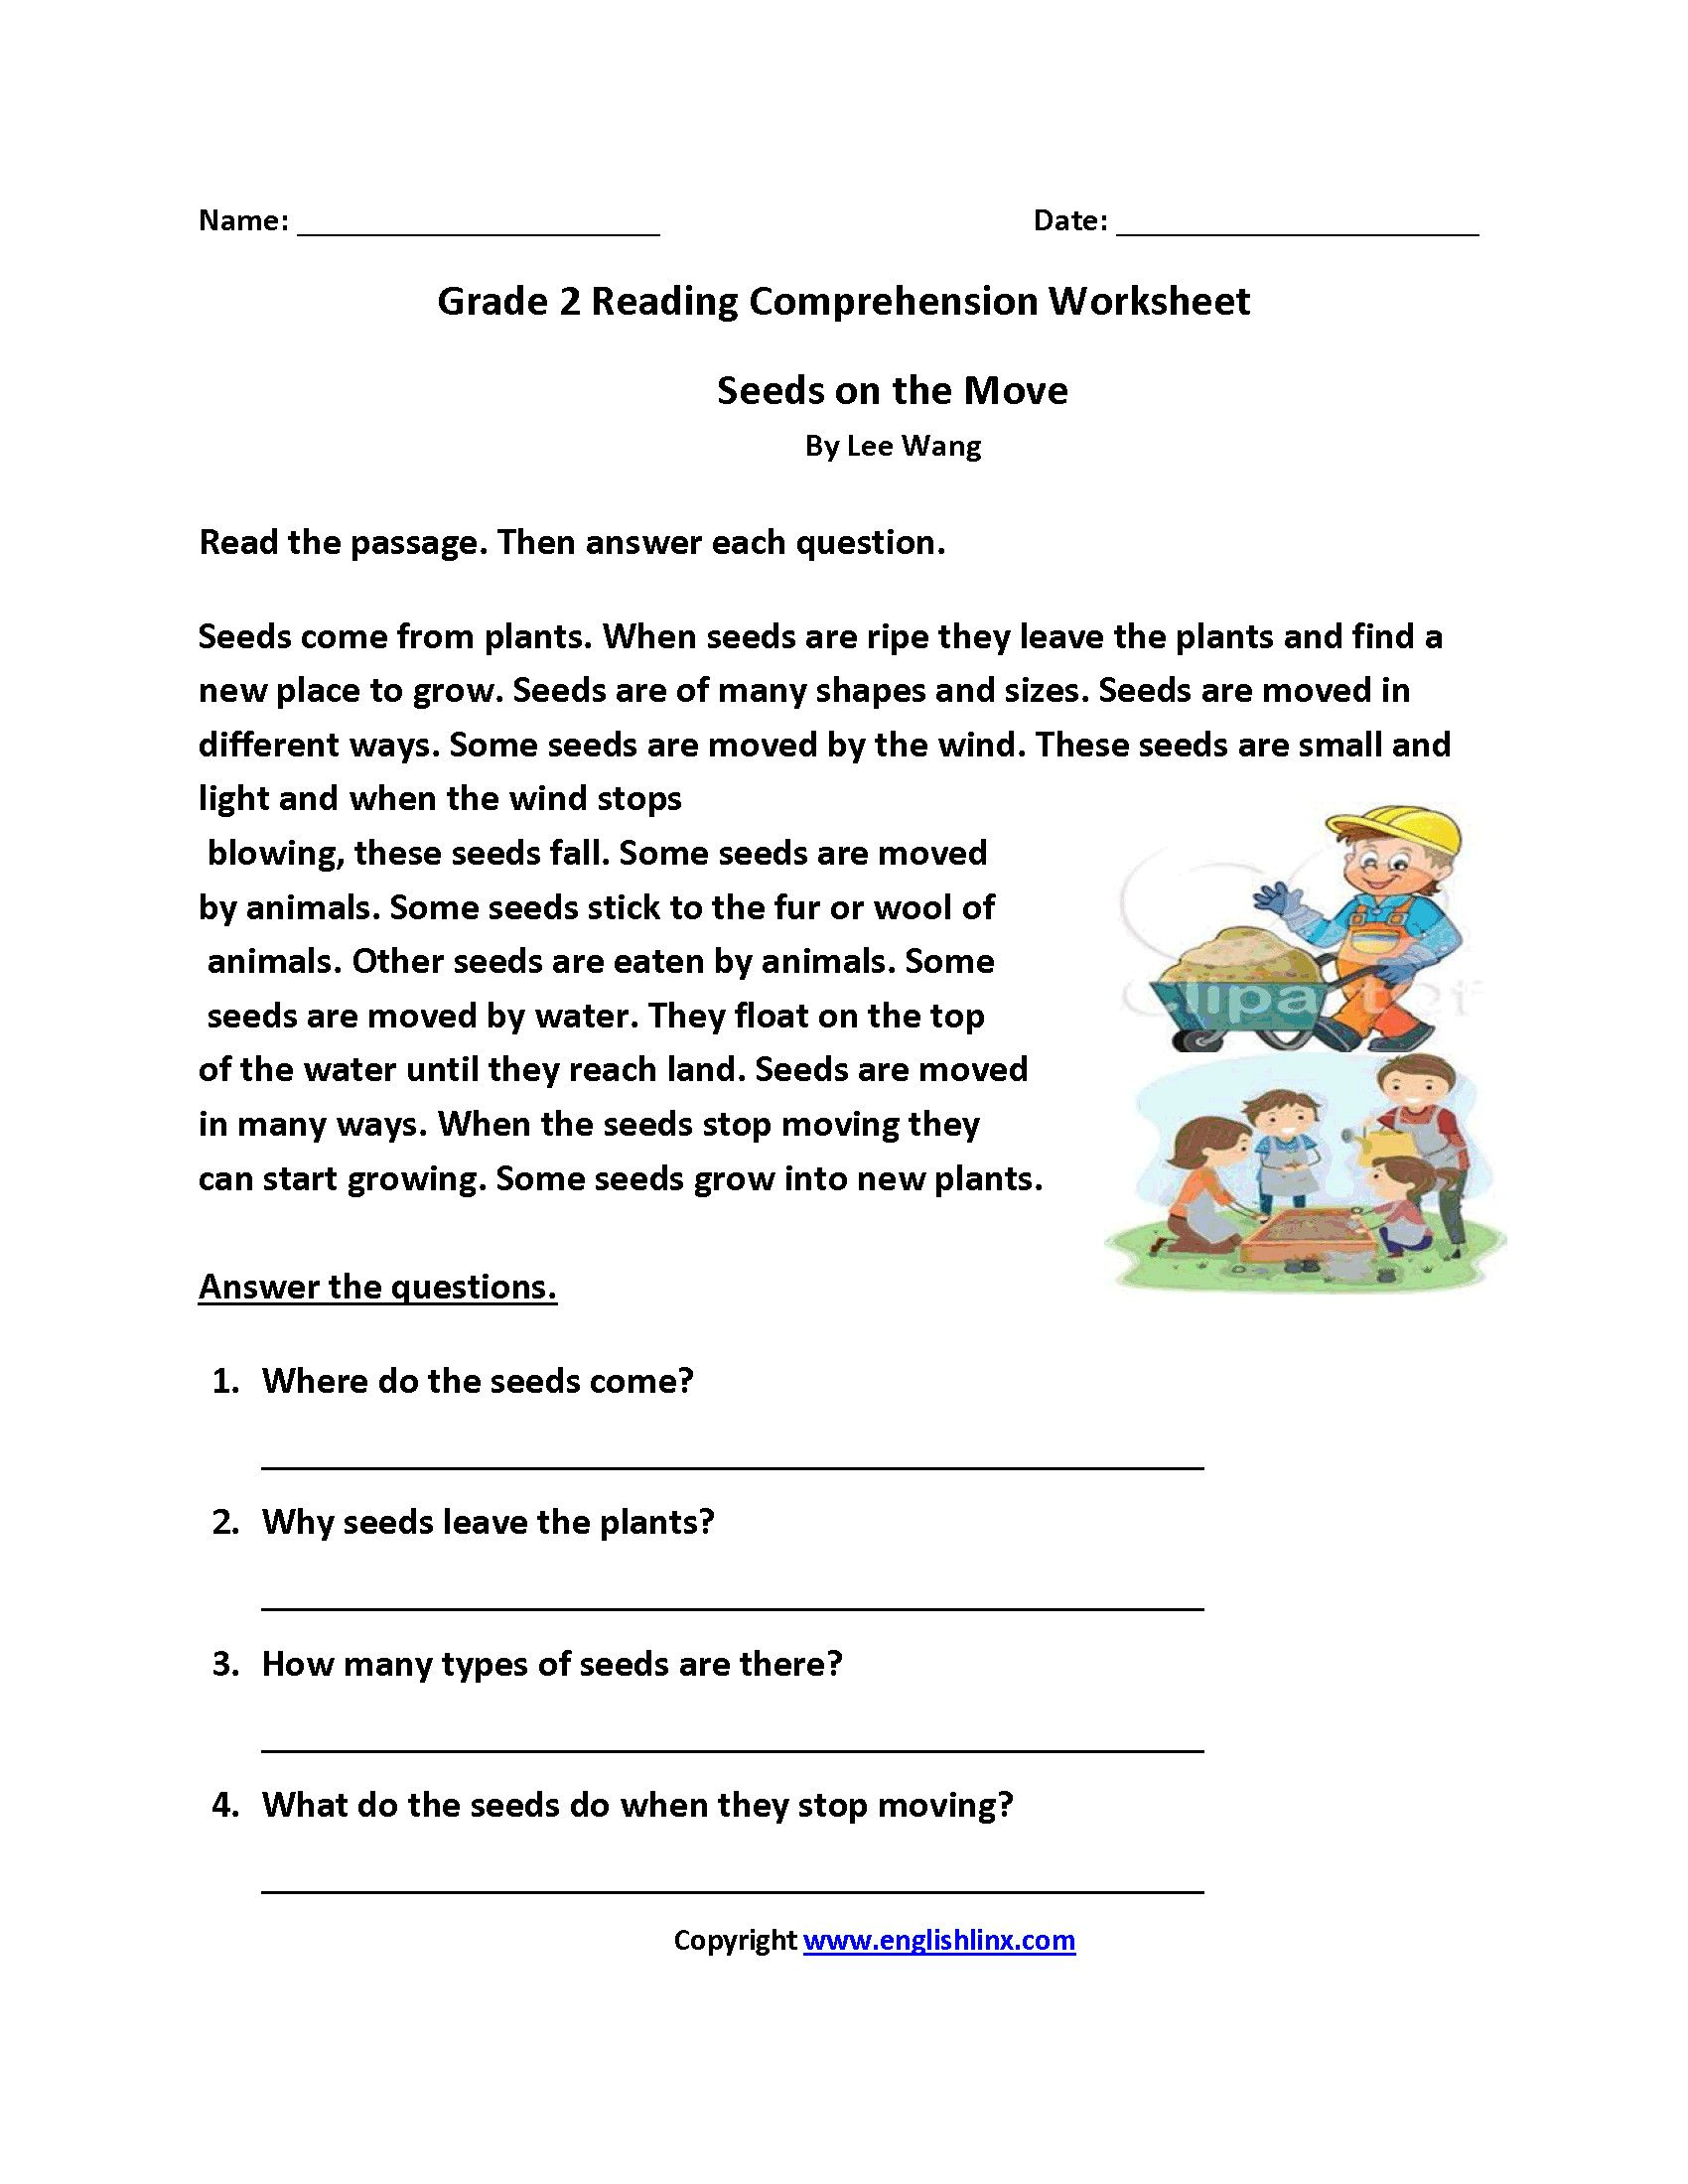 hight resolution of Cold War Reading Comprehension Worksheet 2nd Grade   Printable Worksheets  and Activities for Teachers